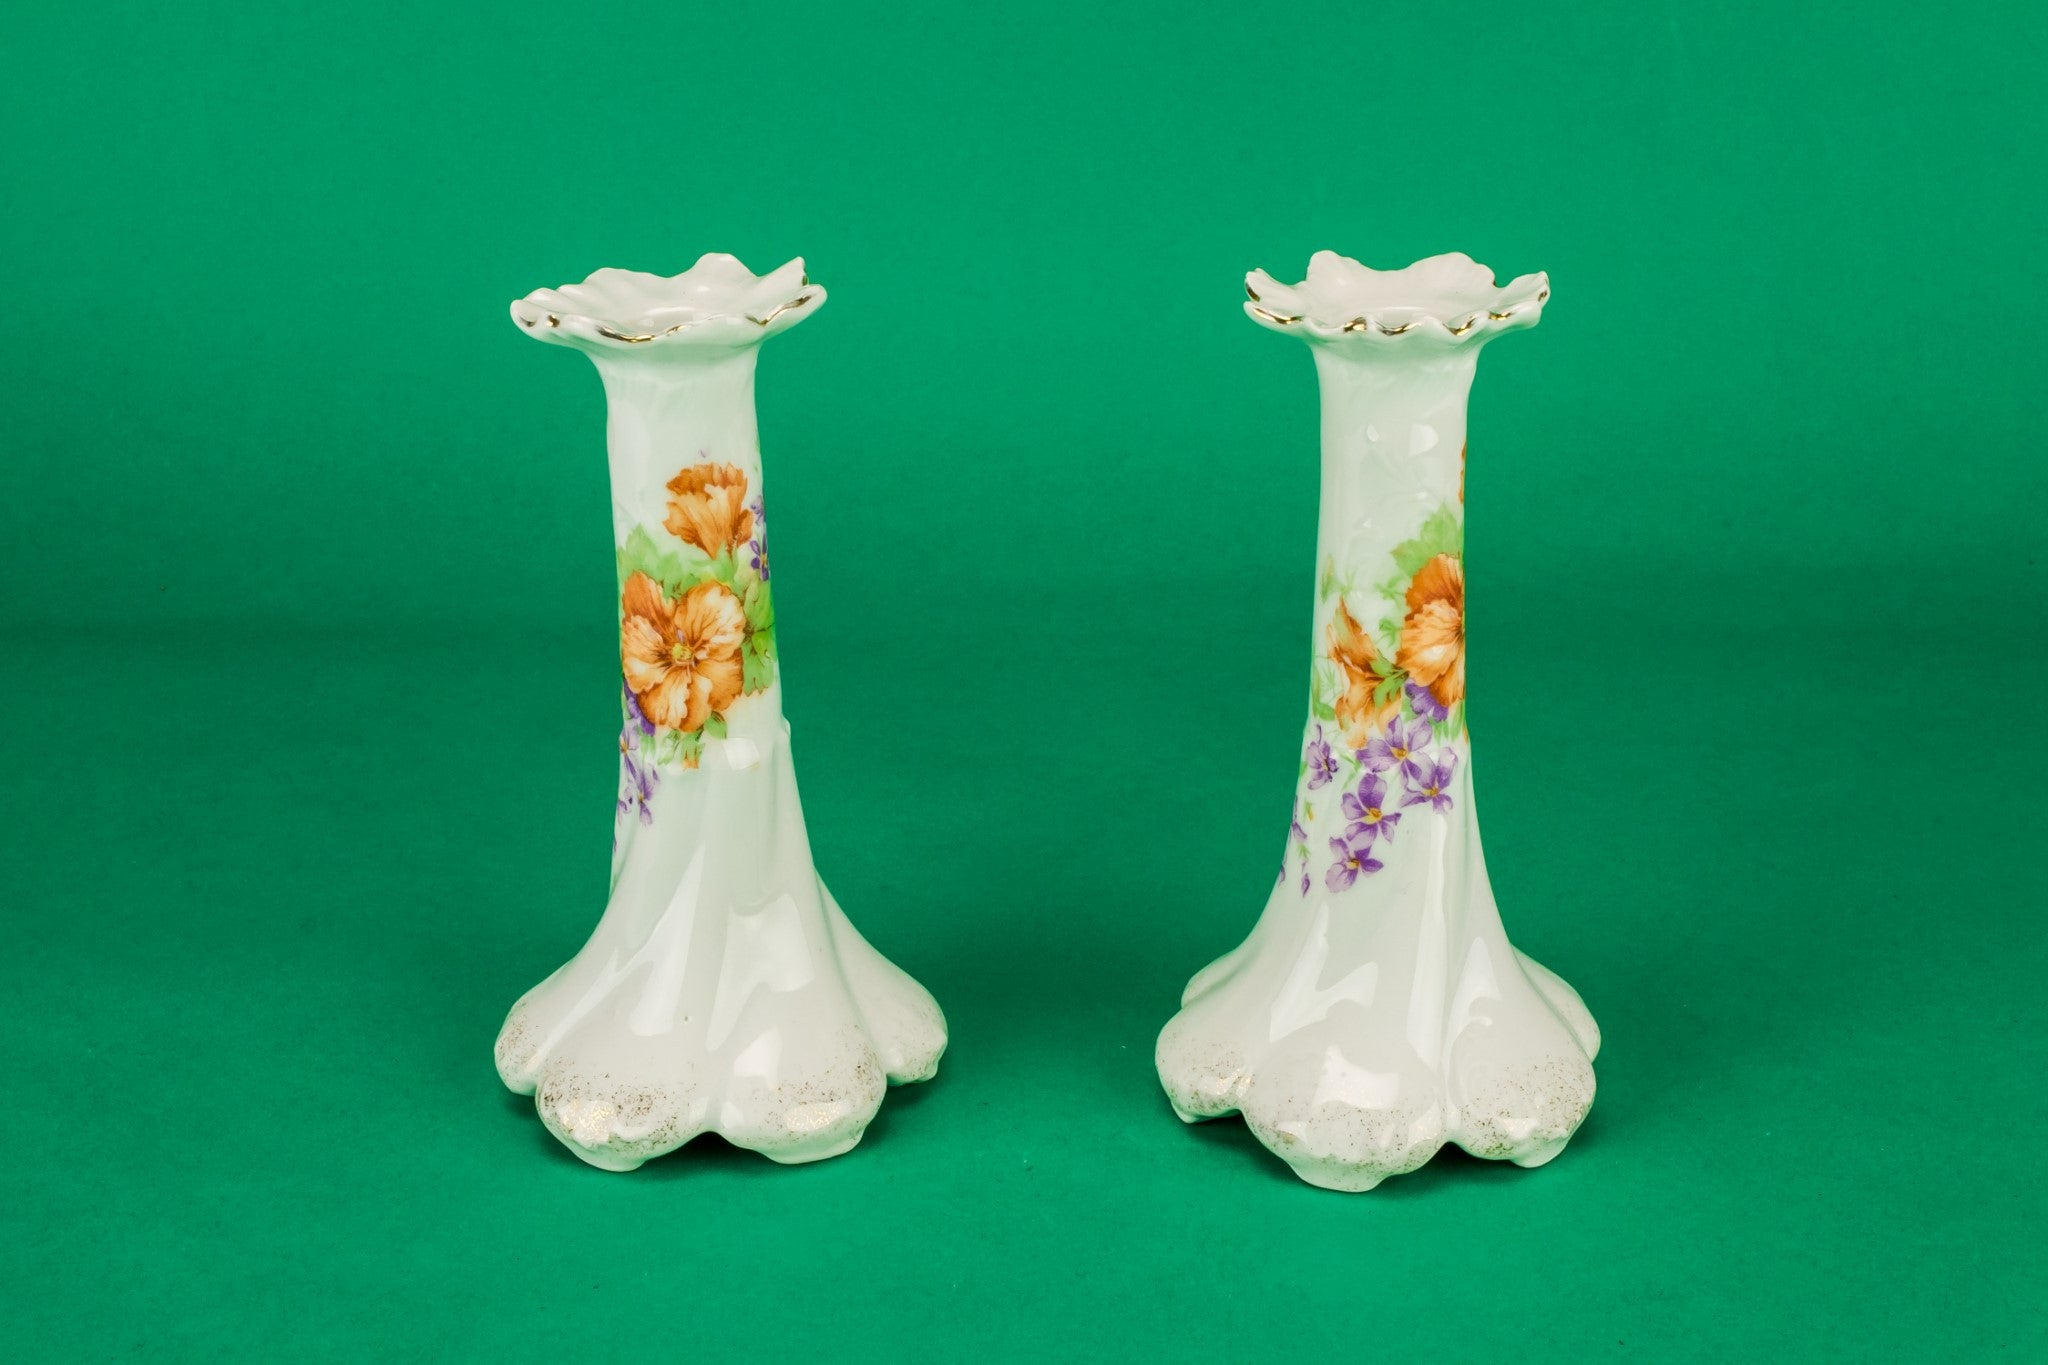 2 white floral candlesticks